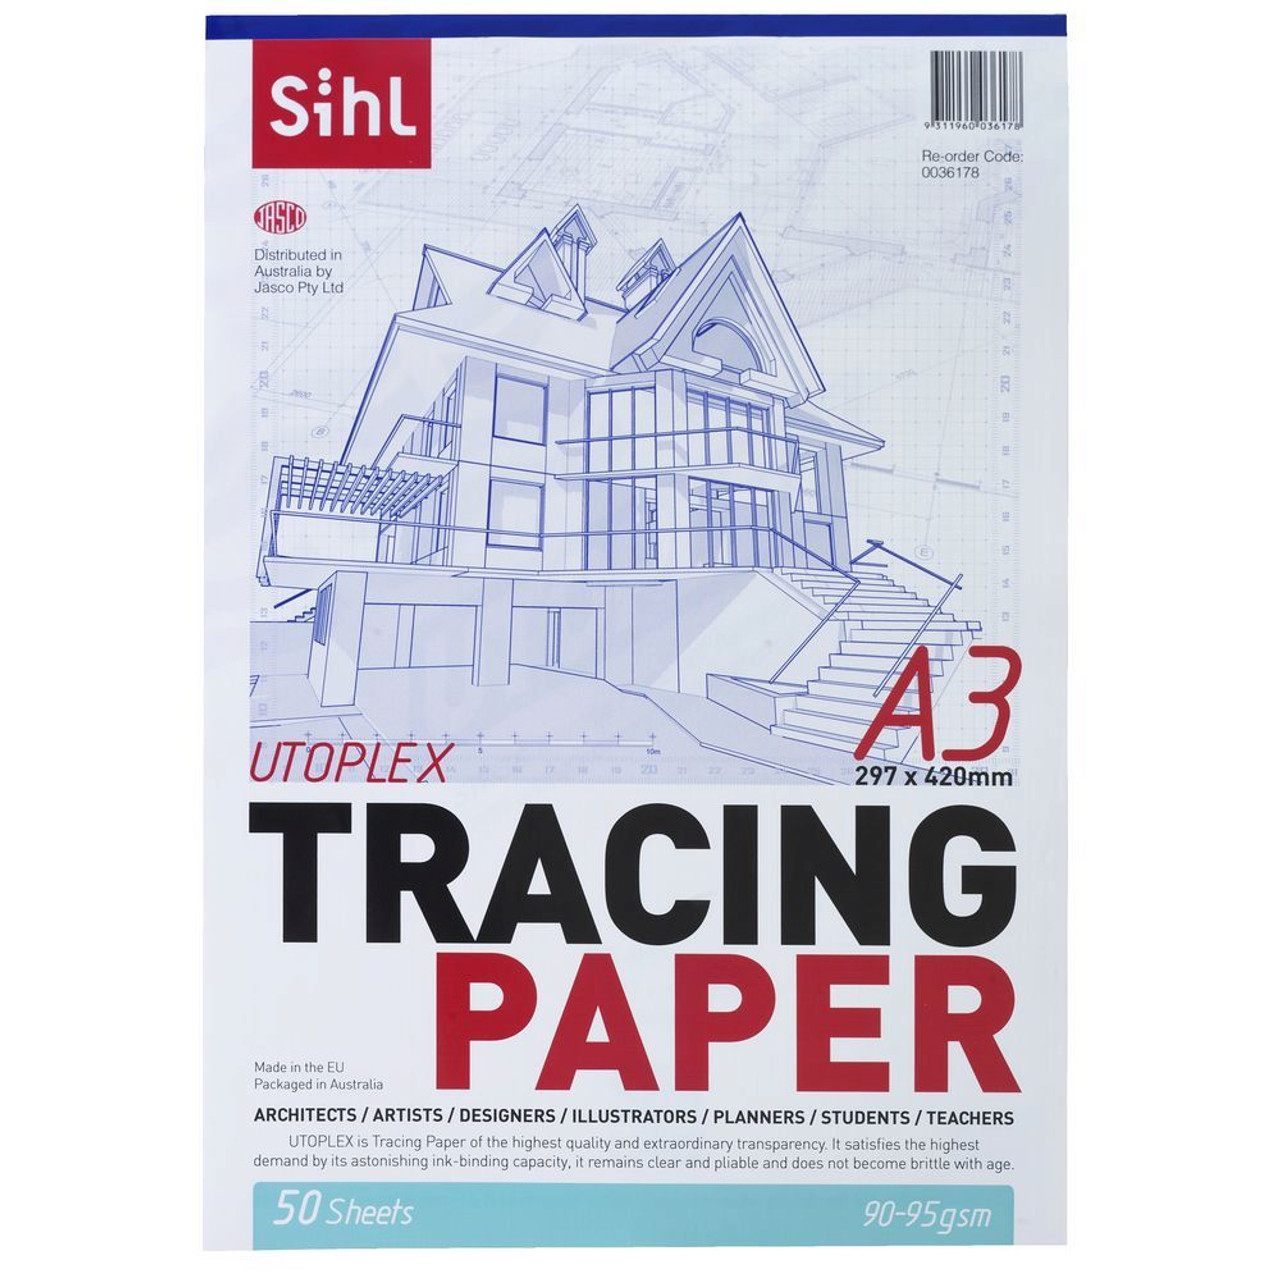 SIHL 0036178 UTOPLEX TRACING PAPER 90-95GSM A3 PACK 50 SHEETS